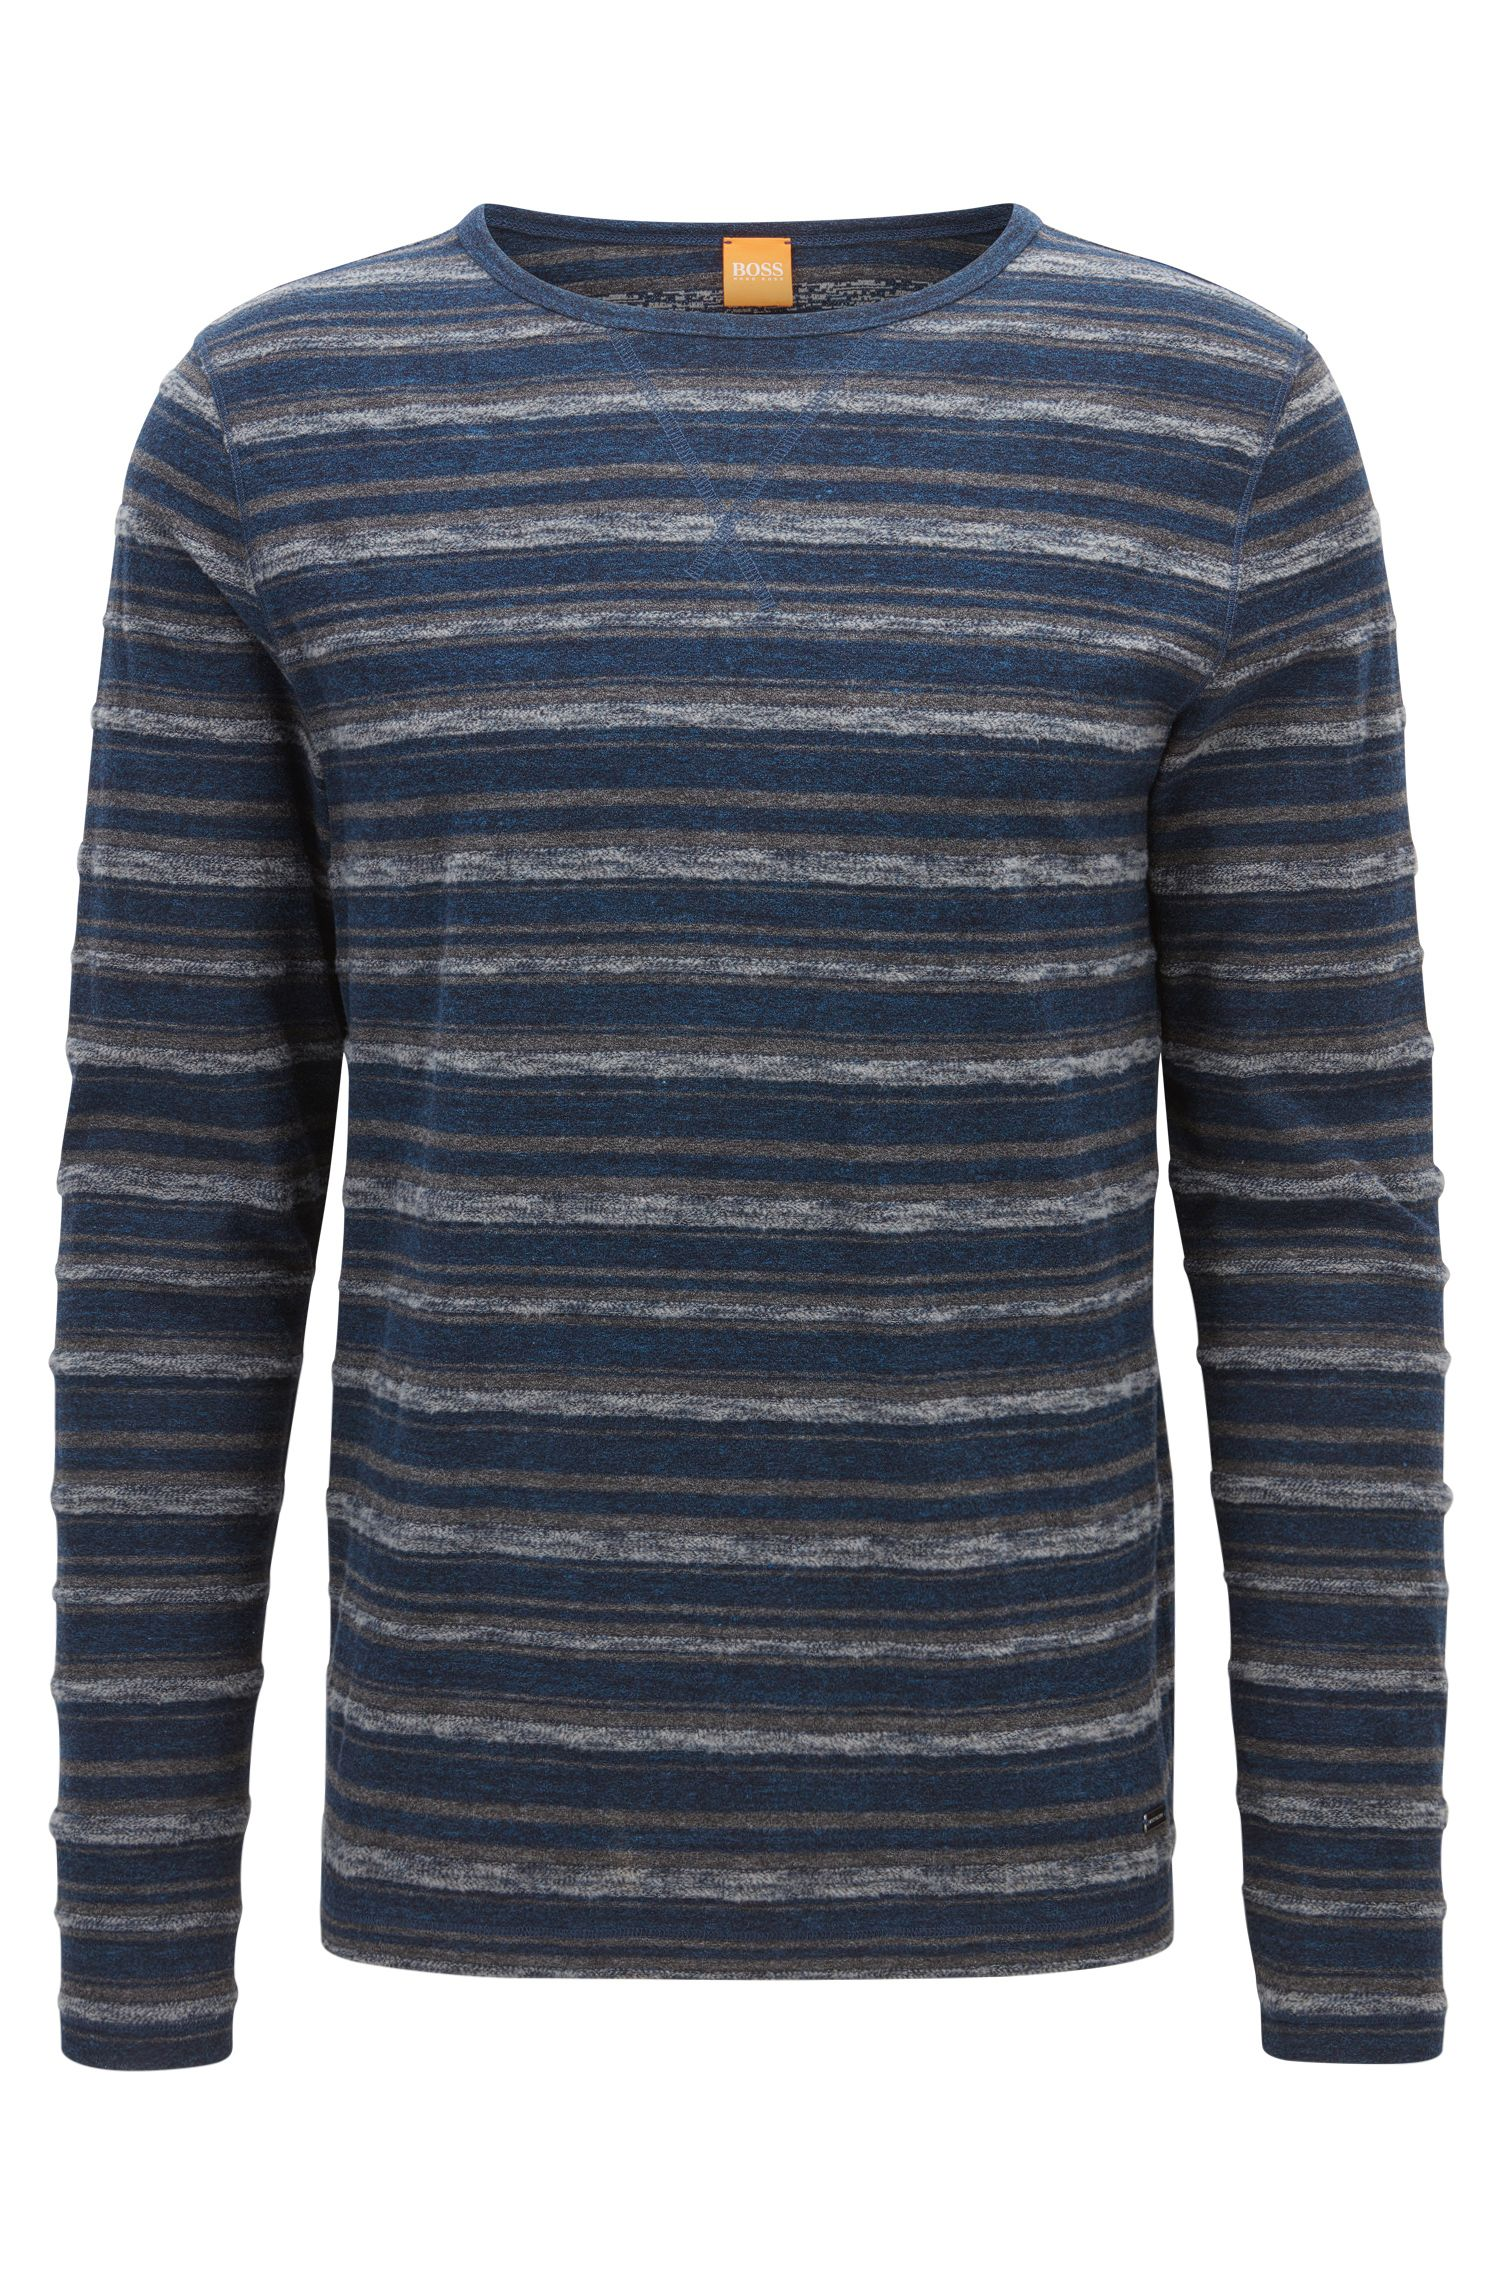 Striped Stretch Cotton T-Shirt | Twinkle